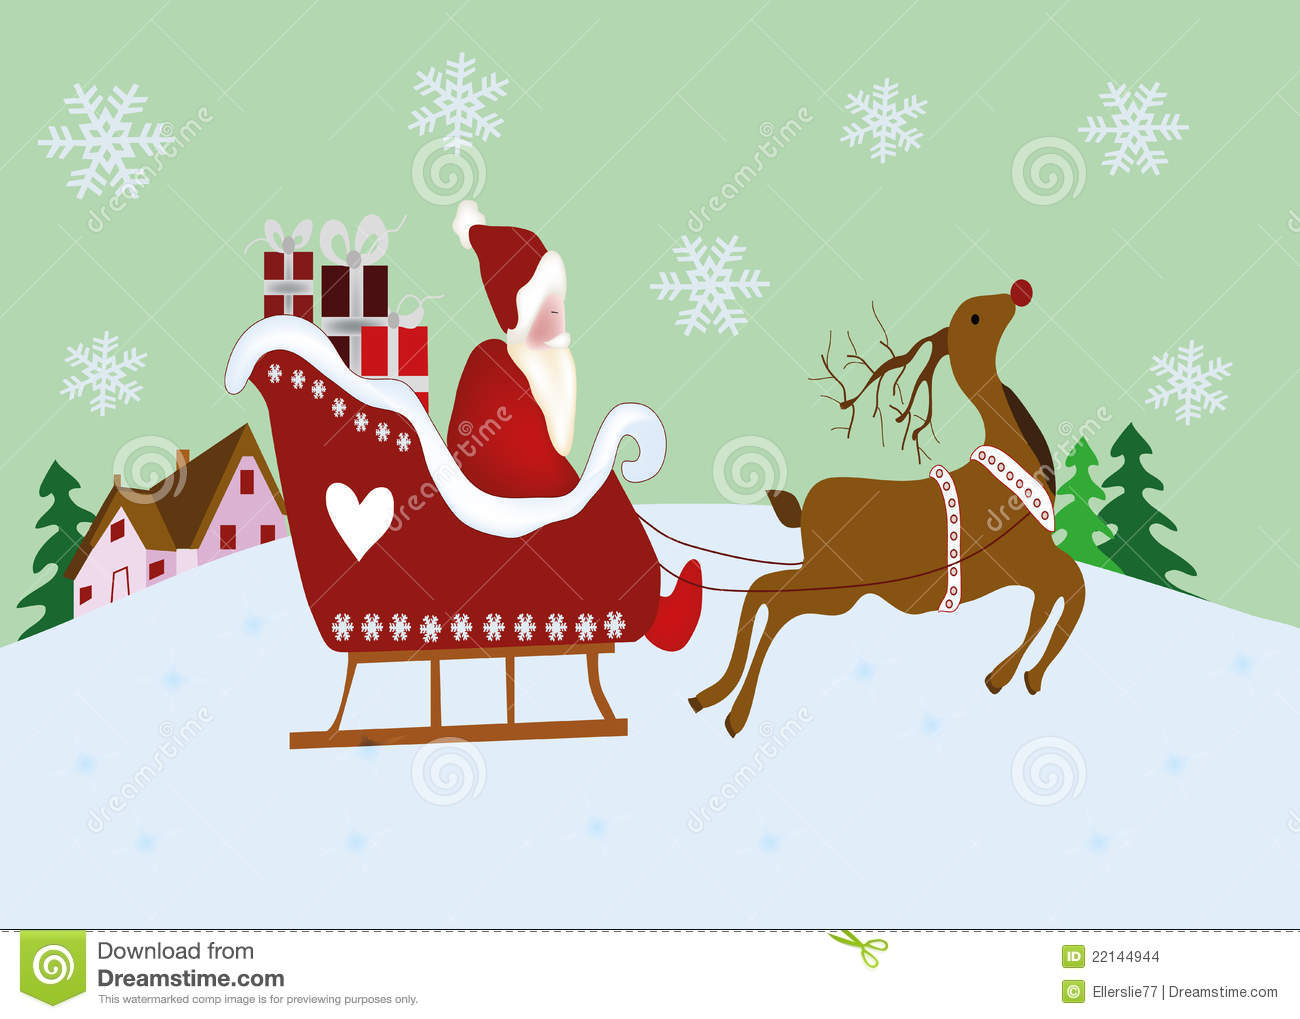 Reindeer and sleigh with presents outdoor christmas decoration stock - Christmas Scene With Reindeer And Sleigh Stock Images